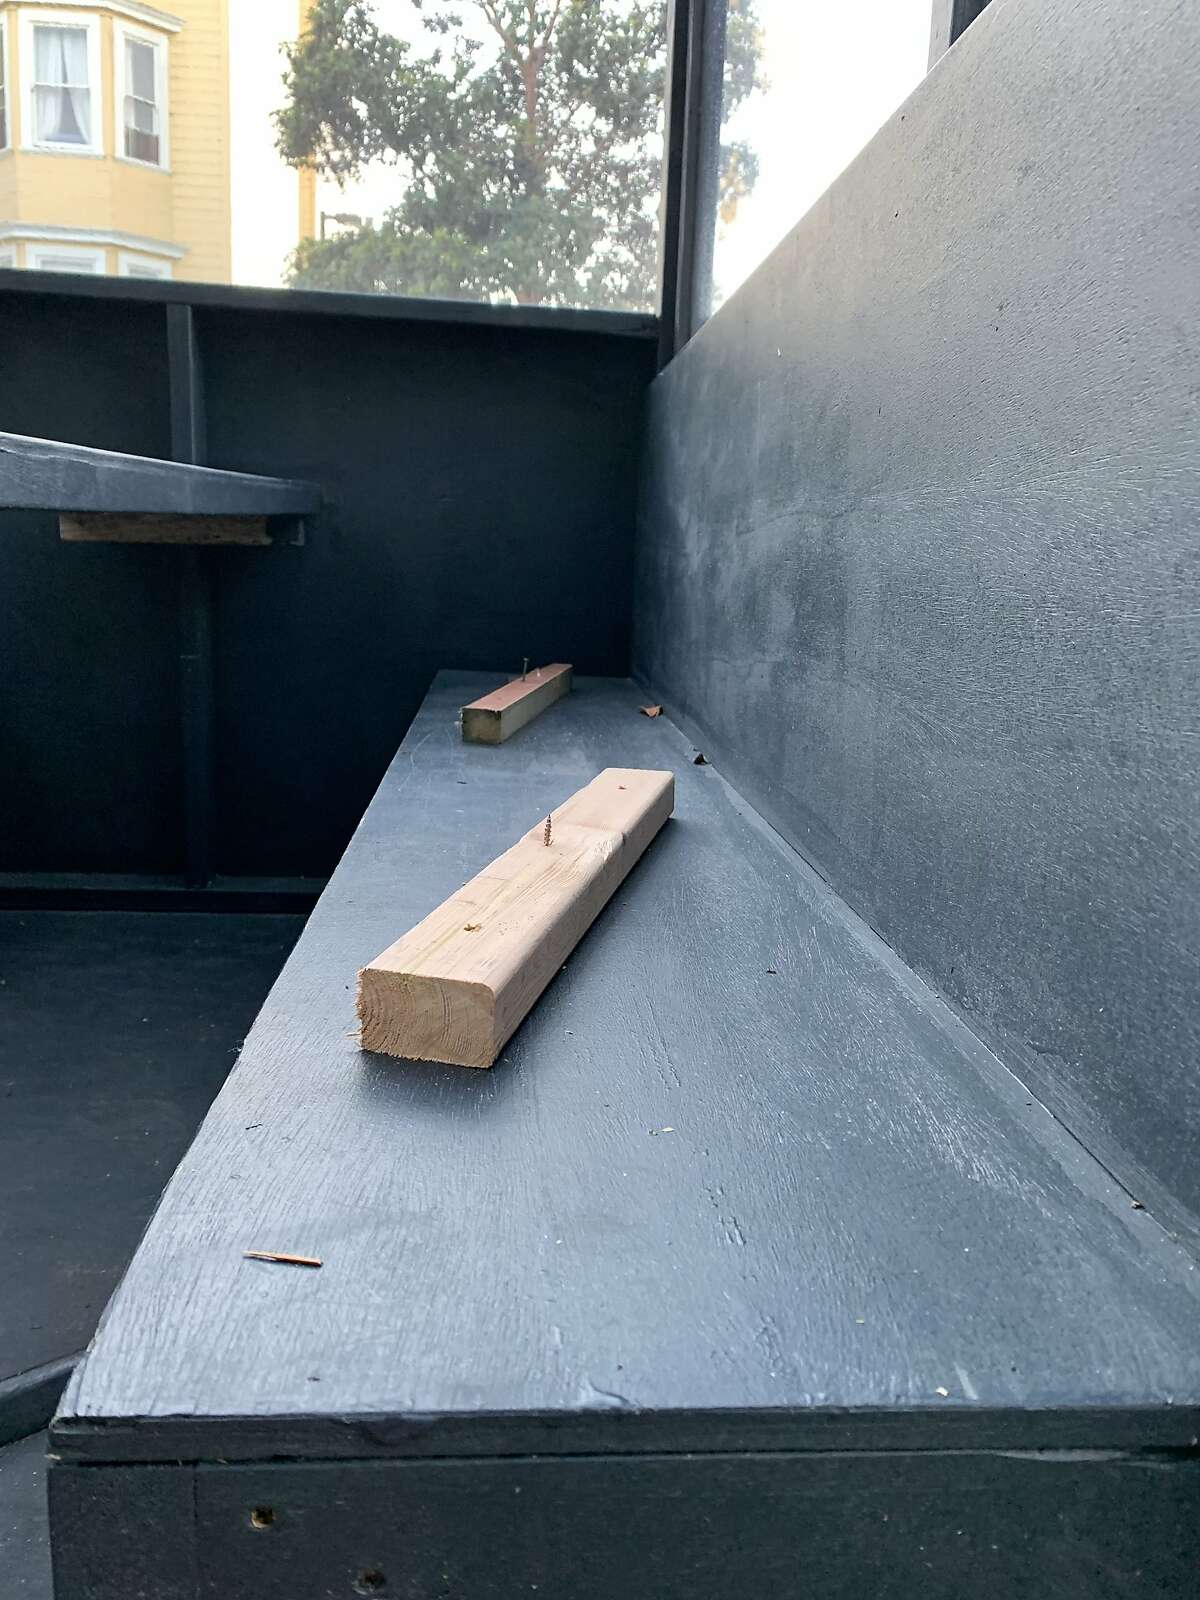 The dining parklet at the Valencia Room, a Mission bar at the center of a controversy over exposed nails in its parklet. The bar says it was vandalized, but a homelessness expert says the nails were an attempt to deter people seeking shelter.